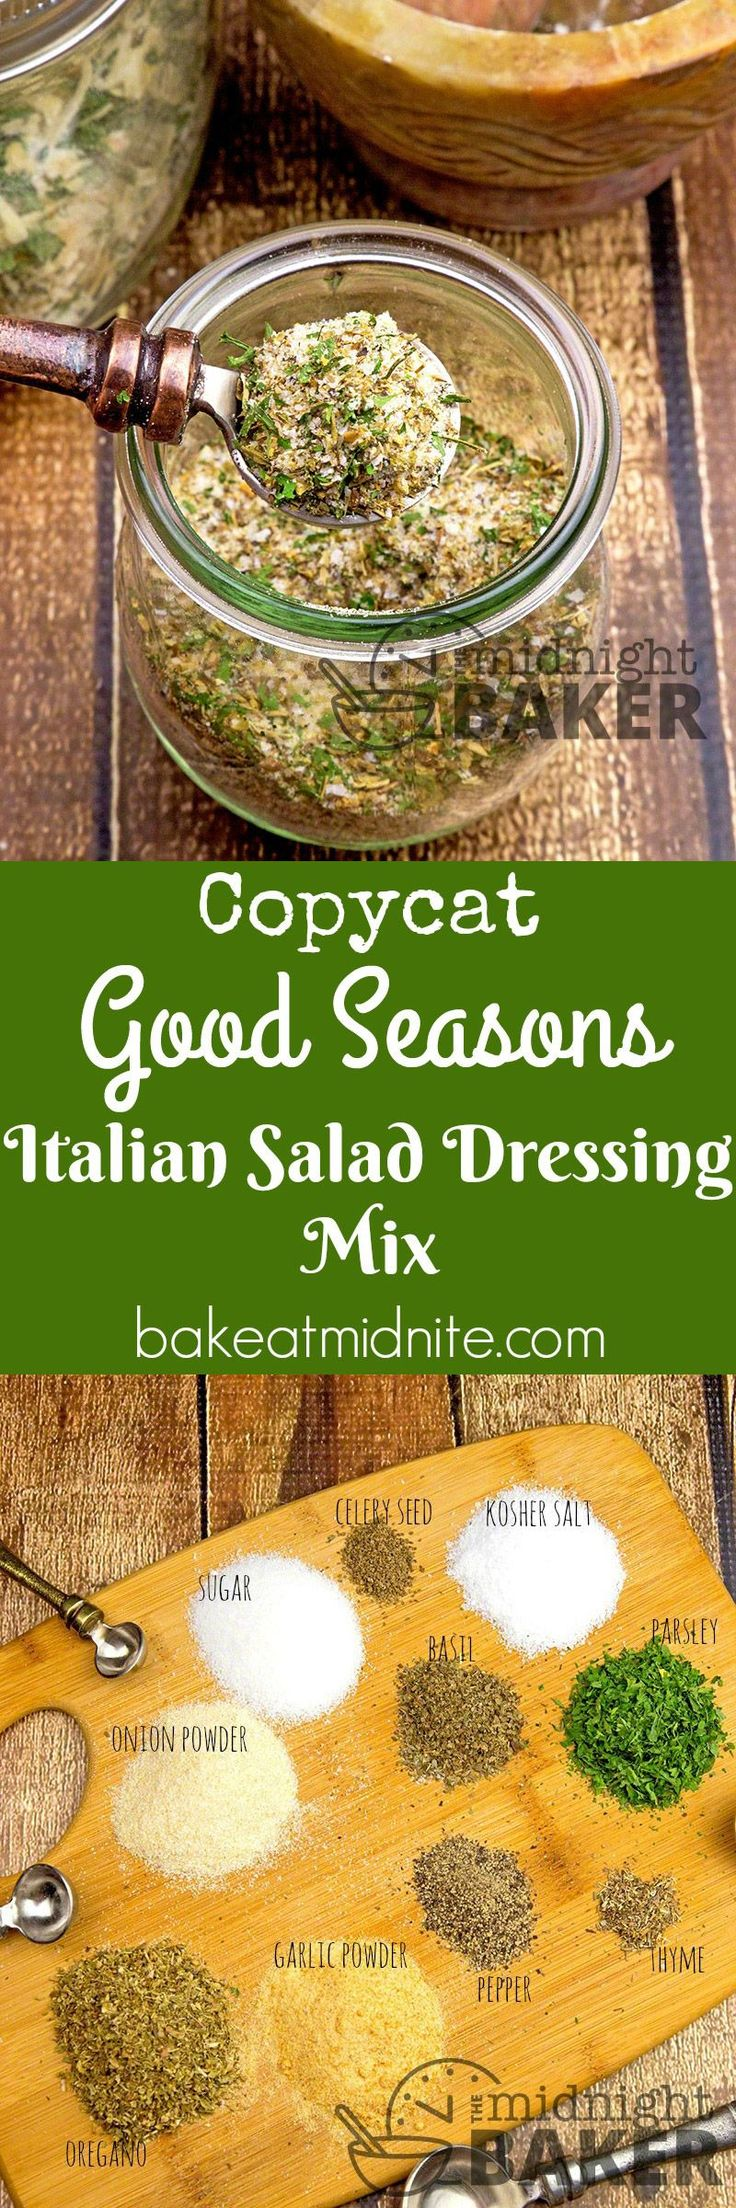 Best 20 spices ideas on pinterest homemade seasonings spice and spicy spice for Olive garden salad dressing recipe secret